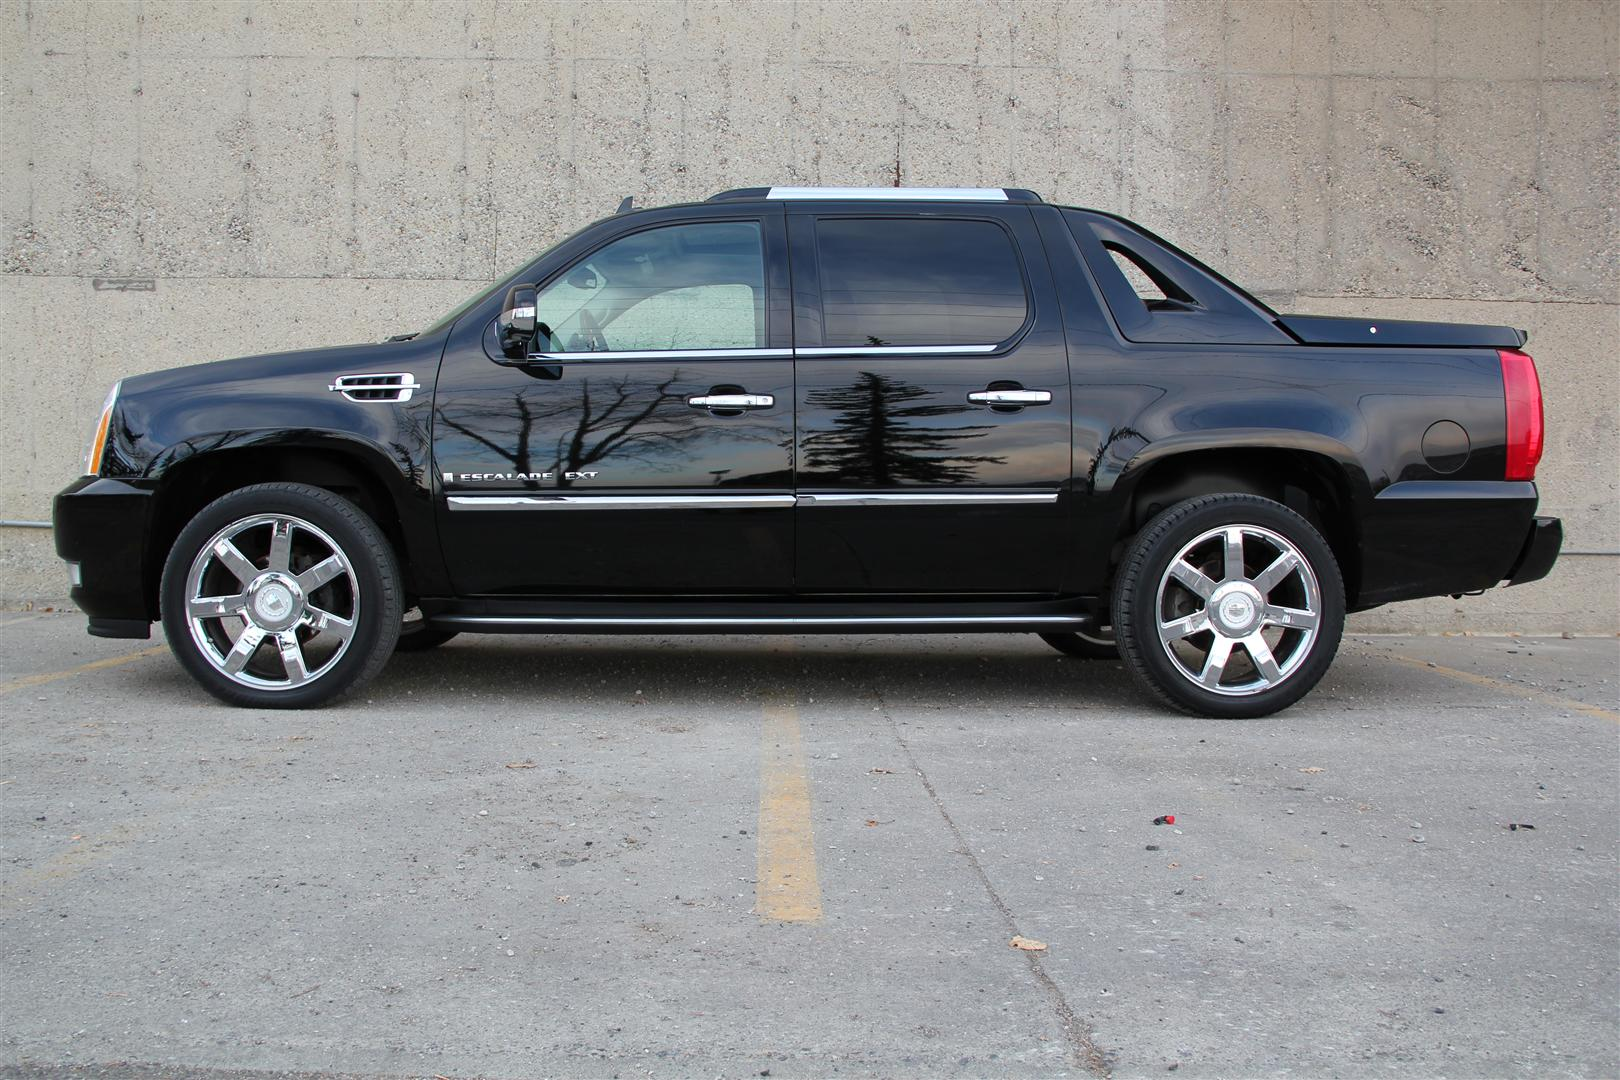 Cadillac Escalade EXT wheels #1